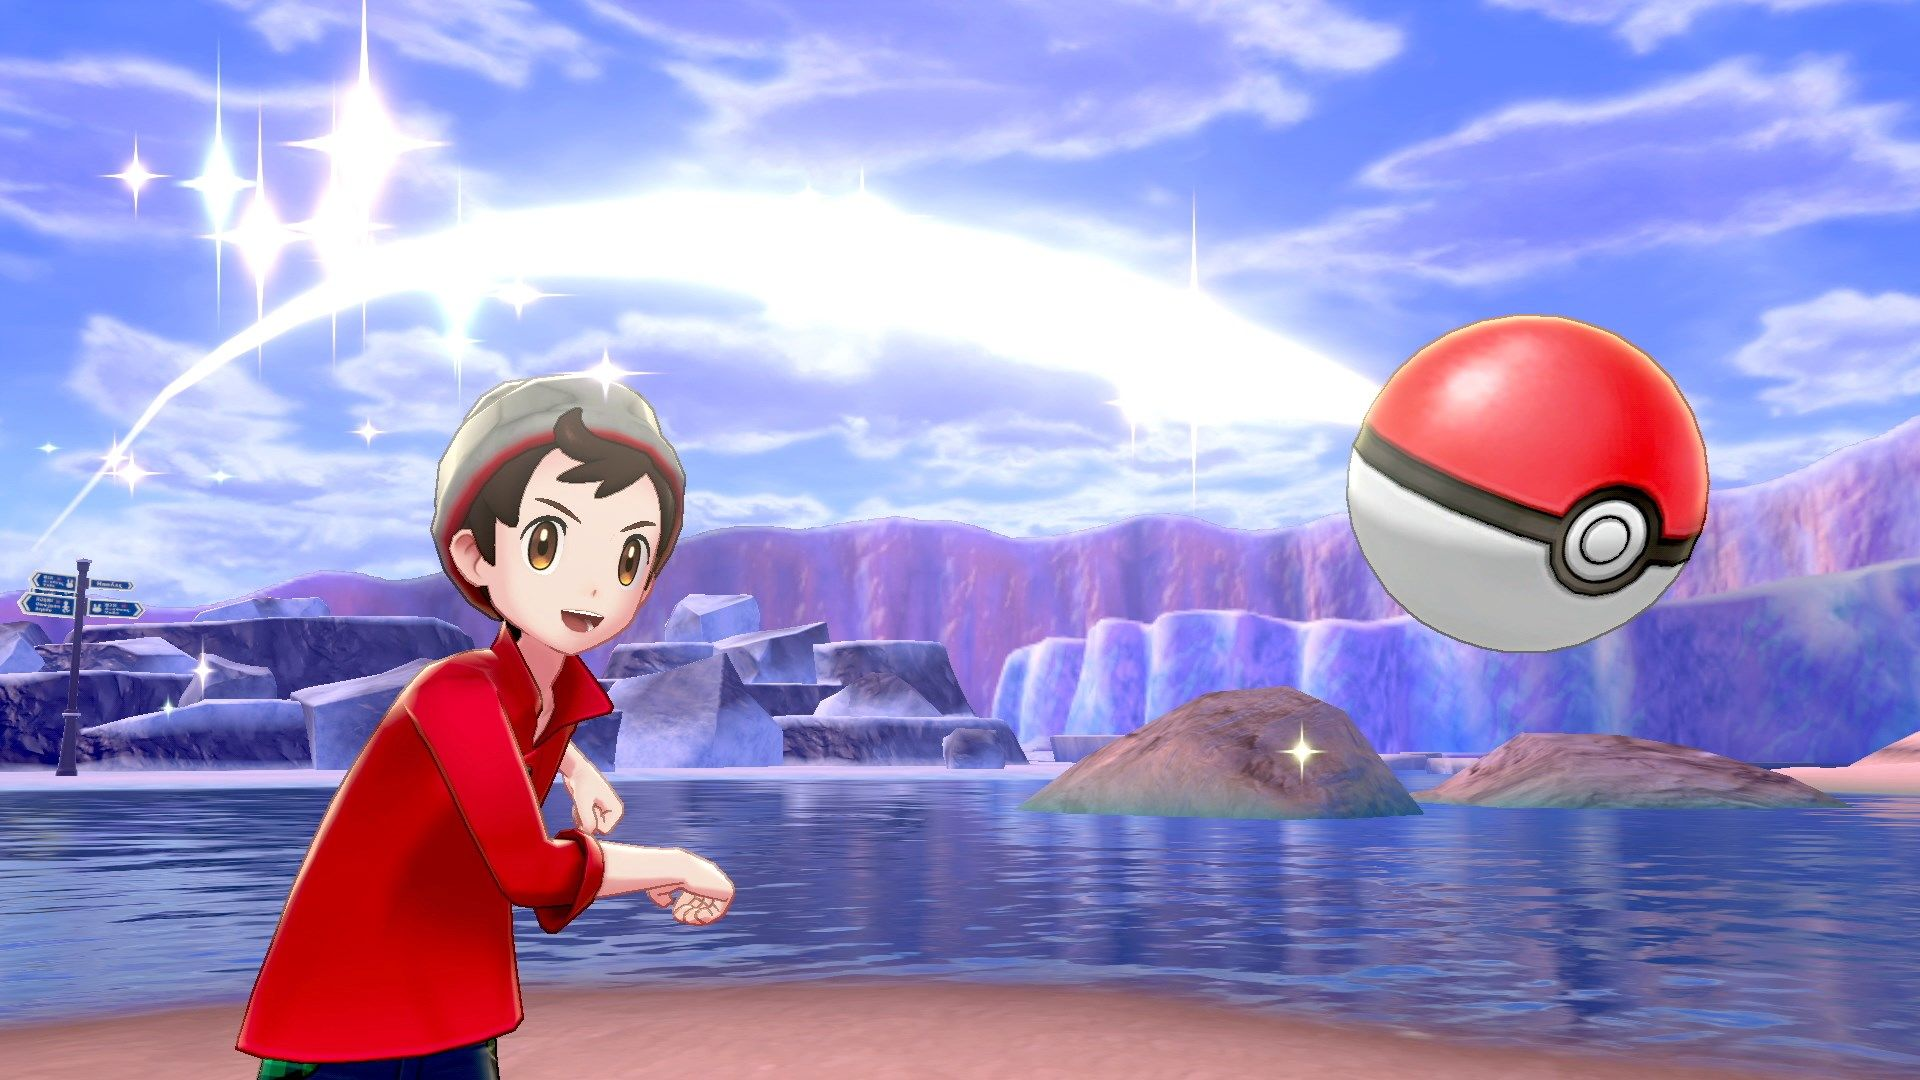 Pokémon Sword and Pokémon Shield Introduce New Regional Evolution